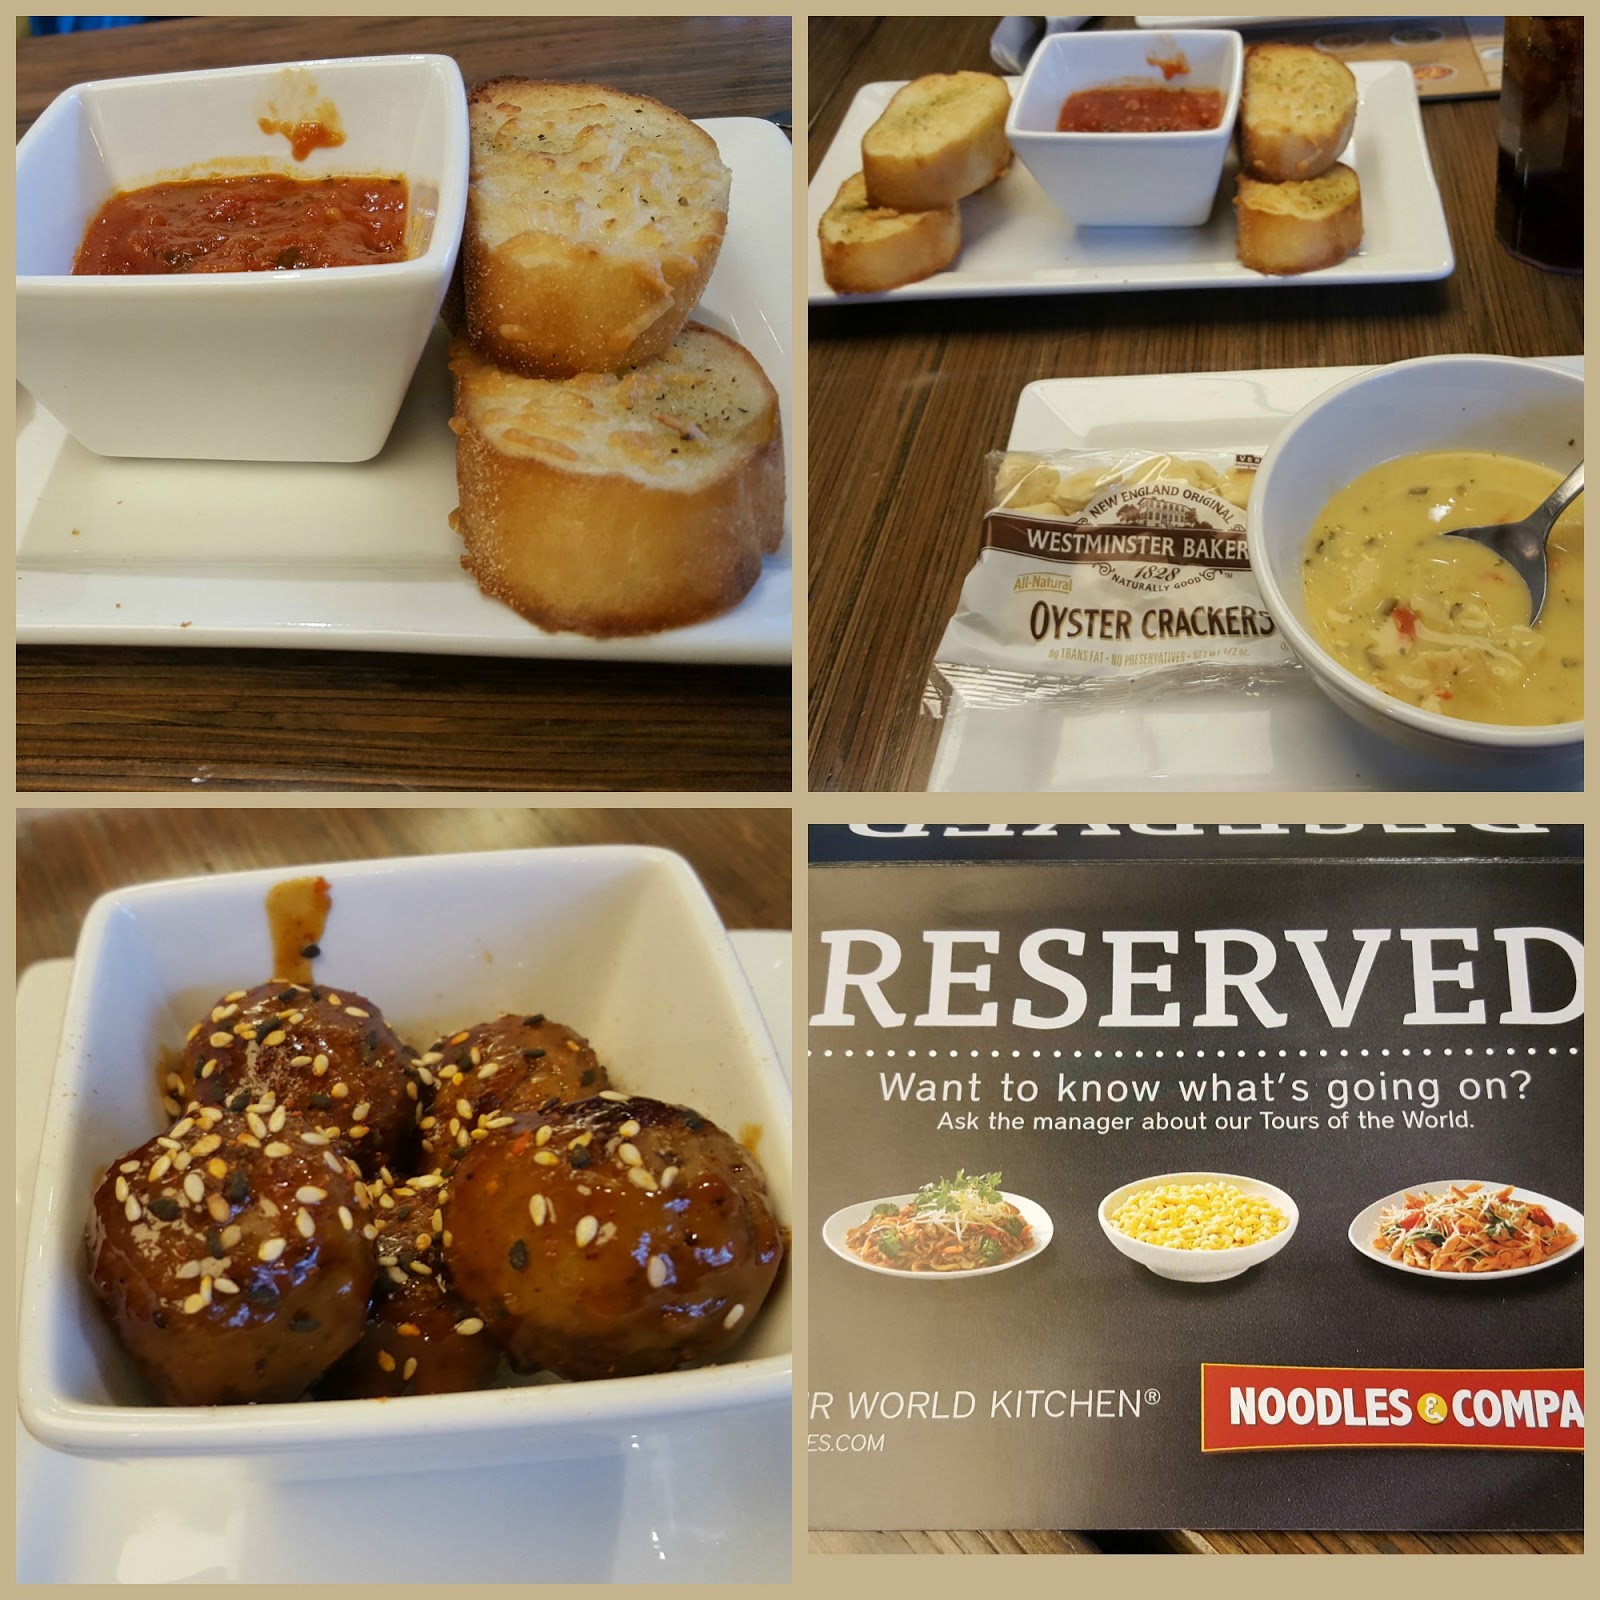 restaurant review: new dishes at noodles & company, novi